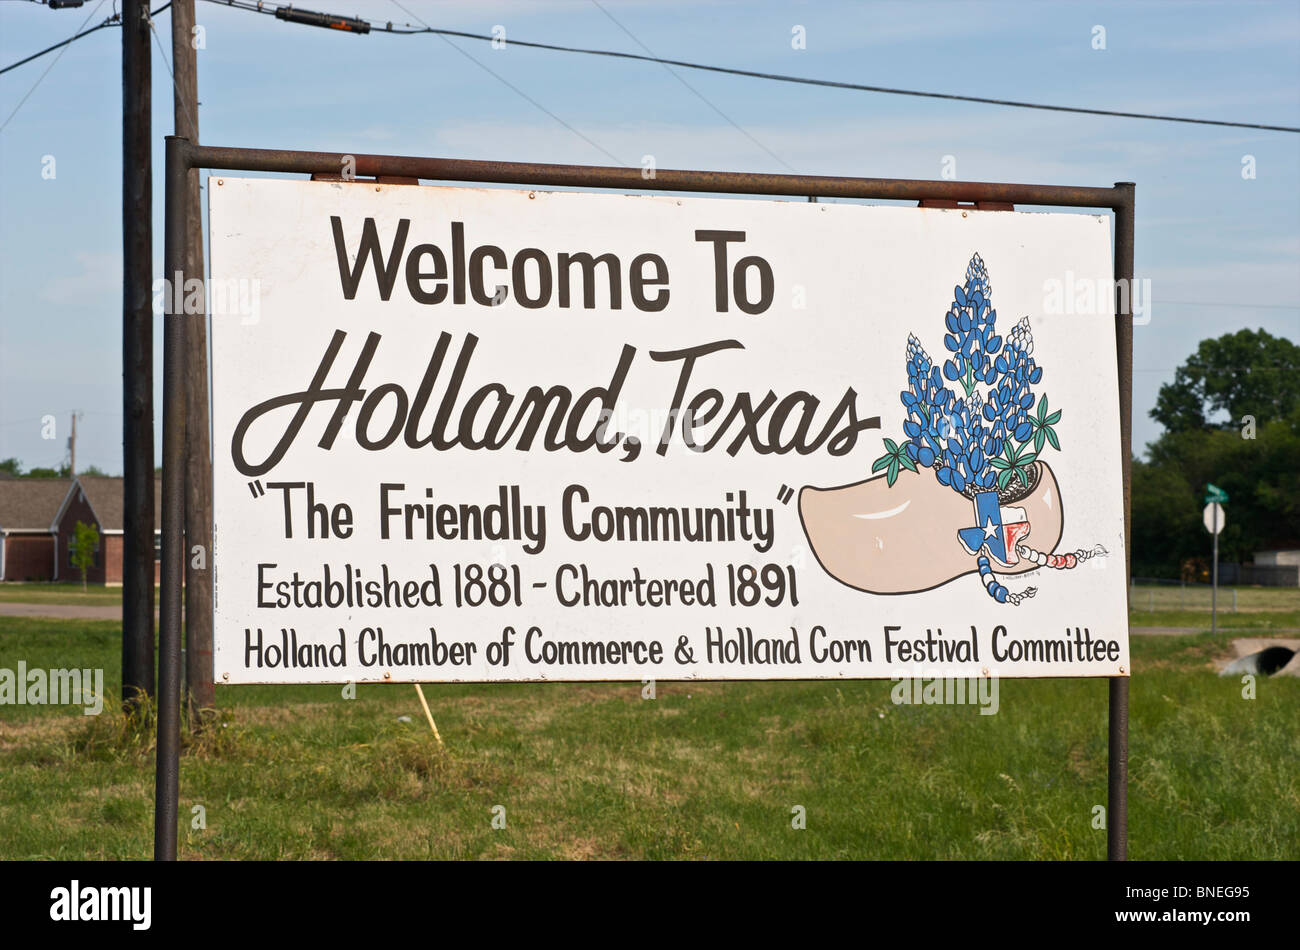 Welcome sign with wooden shoe symbol town of Holland, Texas, USA Stock Photo